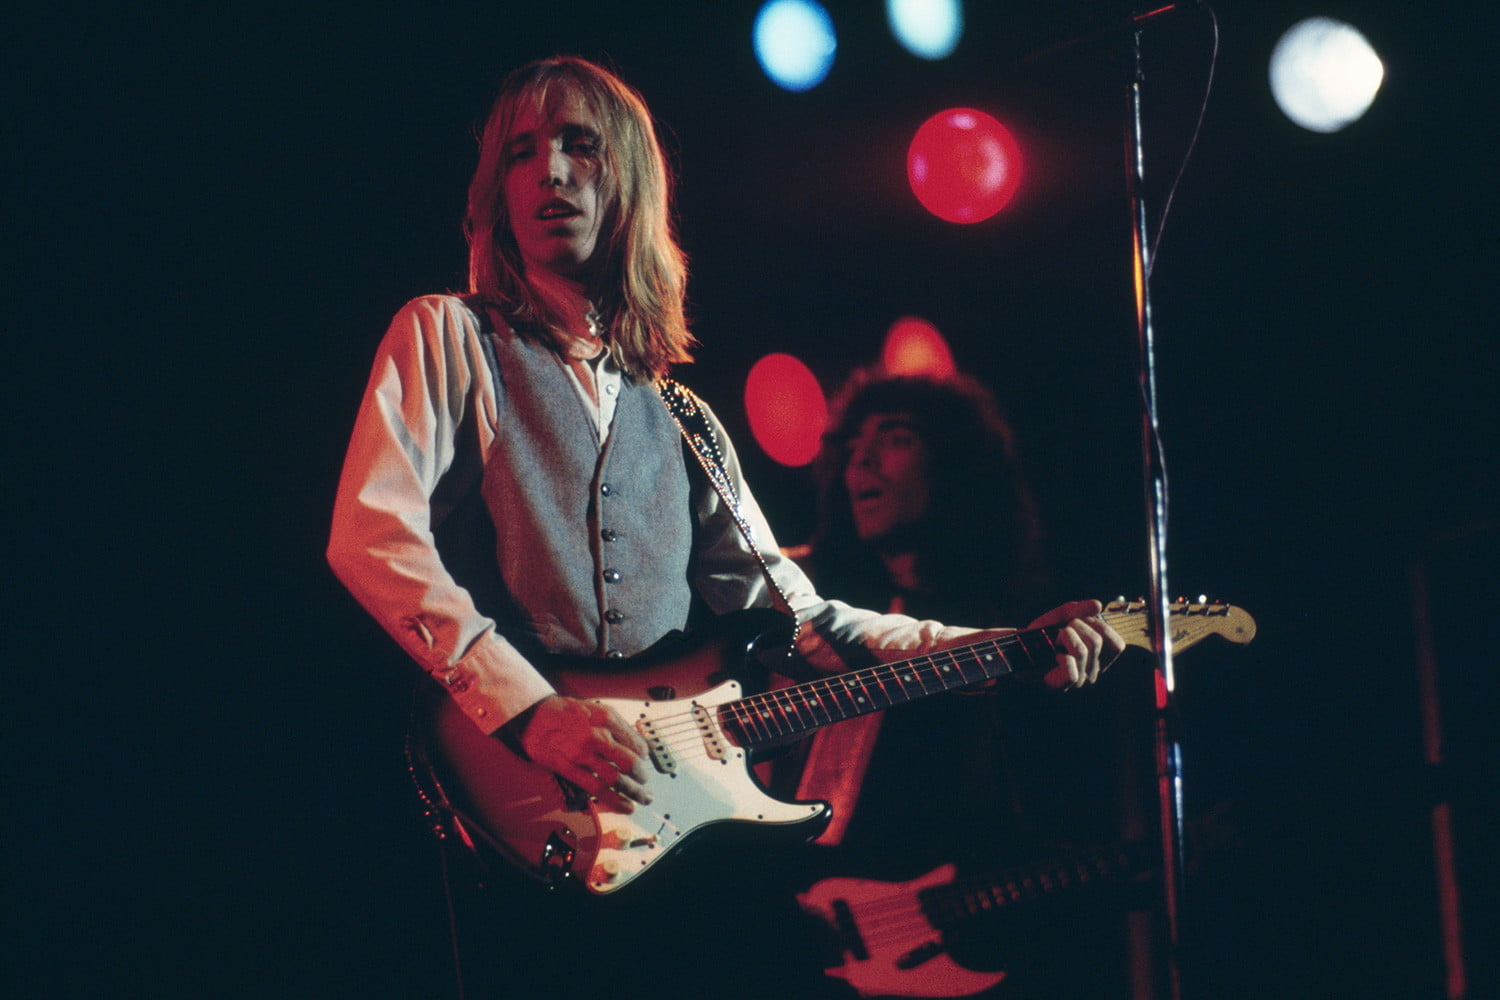 Recordando a Tom Petty. Fotocred: Ian Dickson